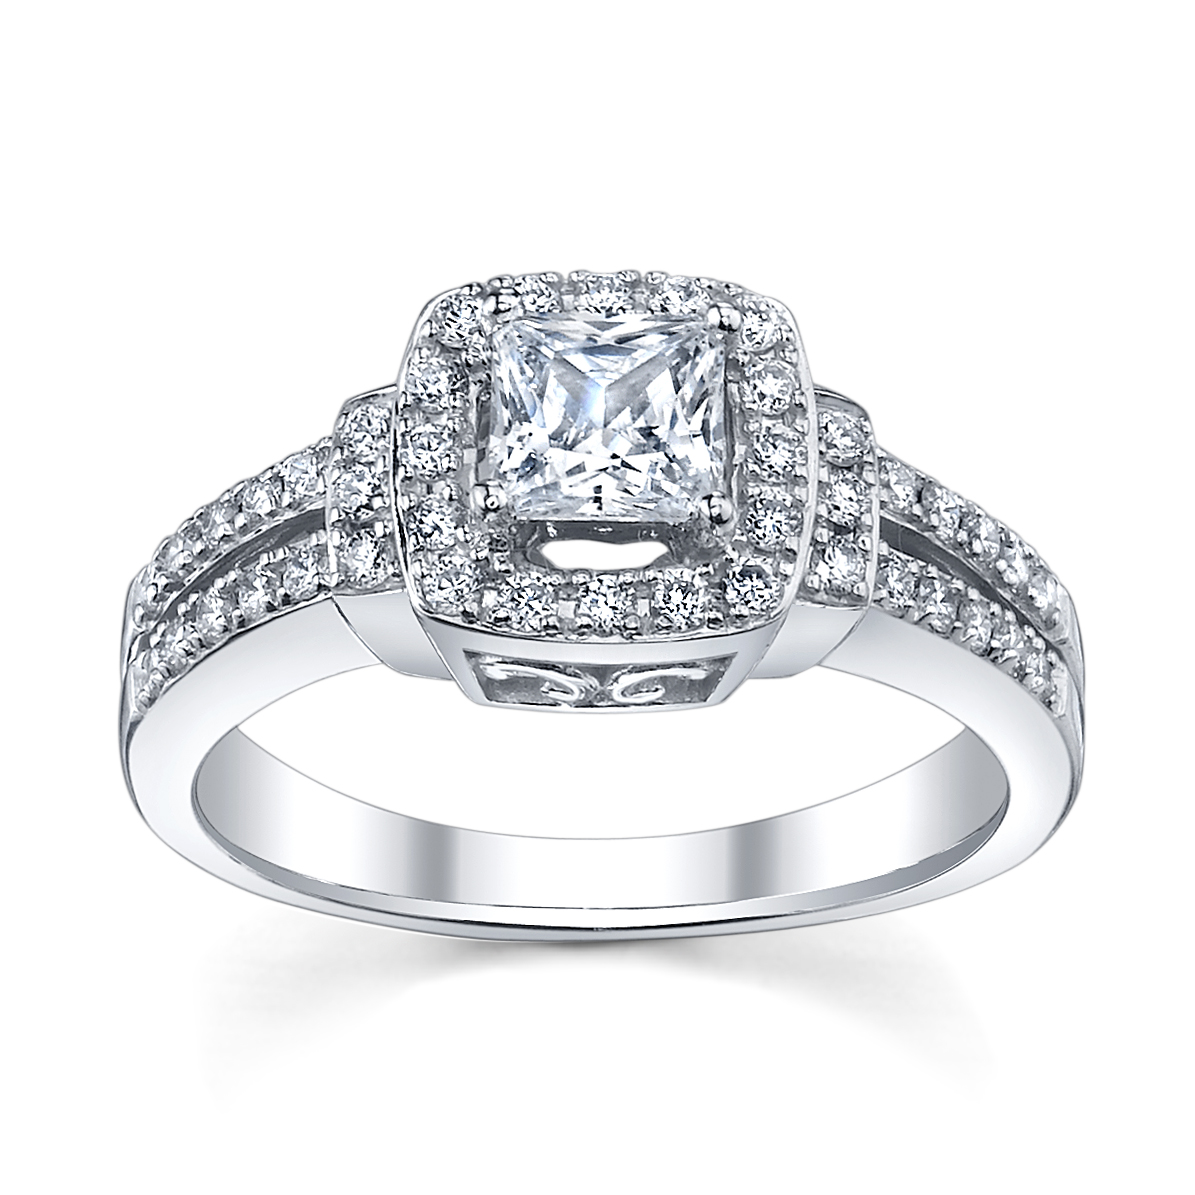 Princess Cut Engagement Ring With Split Shank From Www Robbinsbrothers Sku0377934